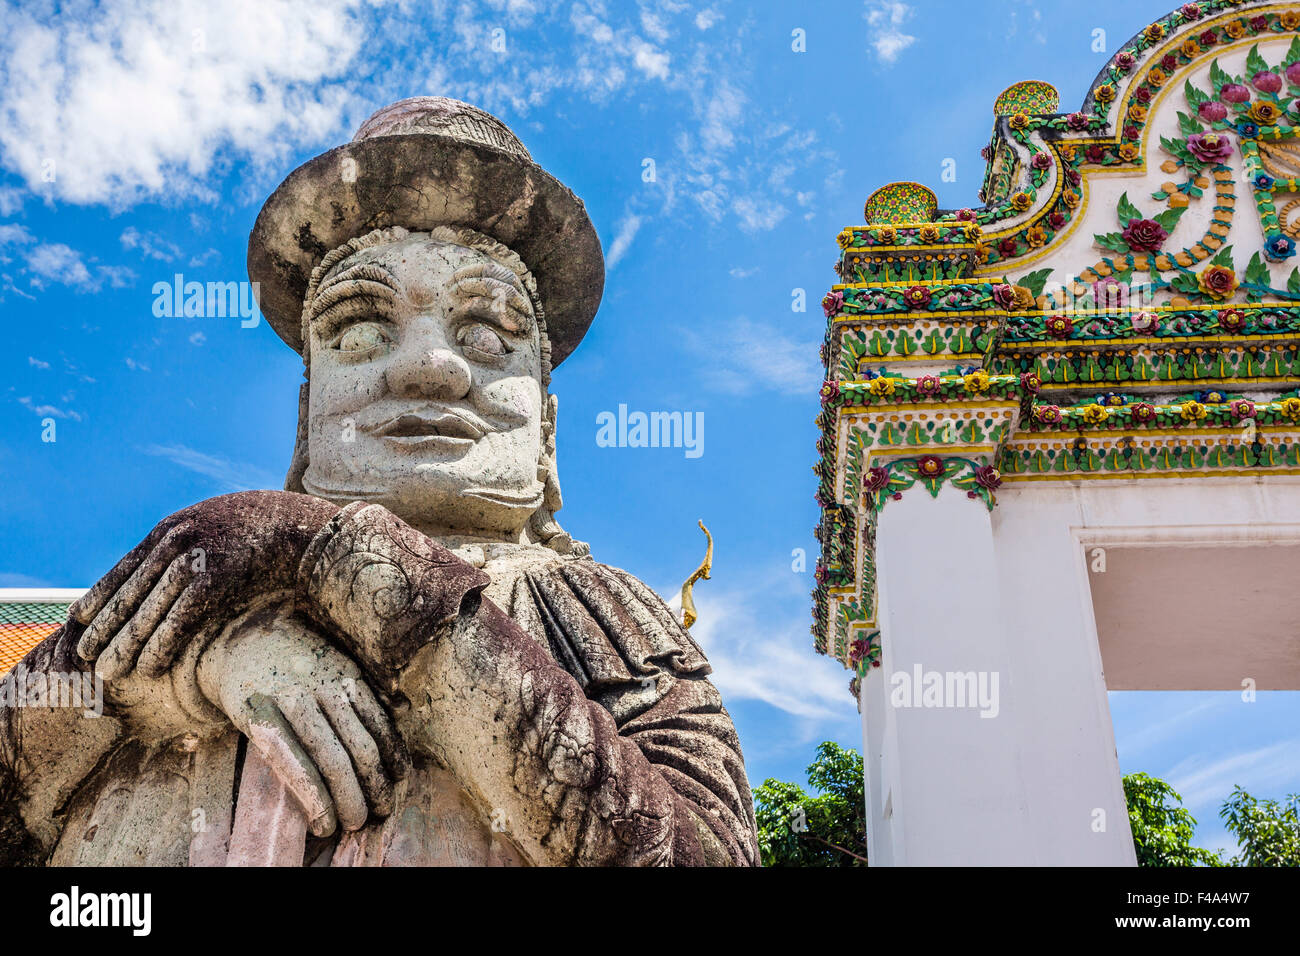 Thailand, Bangkok, Wat Po, warrier statue with top hat guarding a gate to the buddhist temple - Stock Image